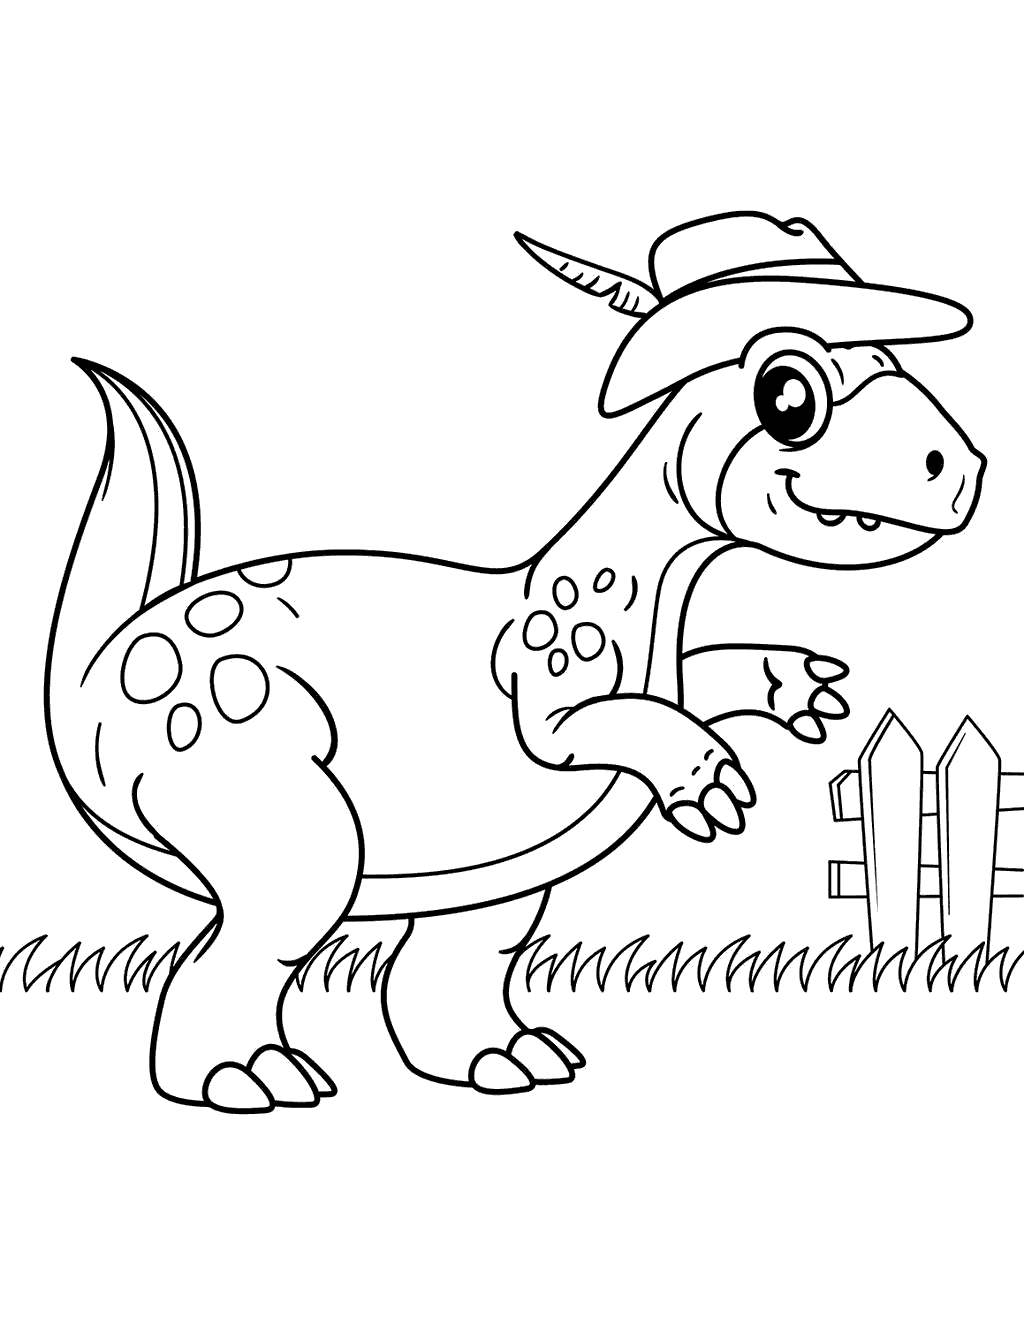 Poochyena Coloring Pages Poochyena From Pokemon Coloring Pages Get Coloring Page